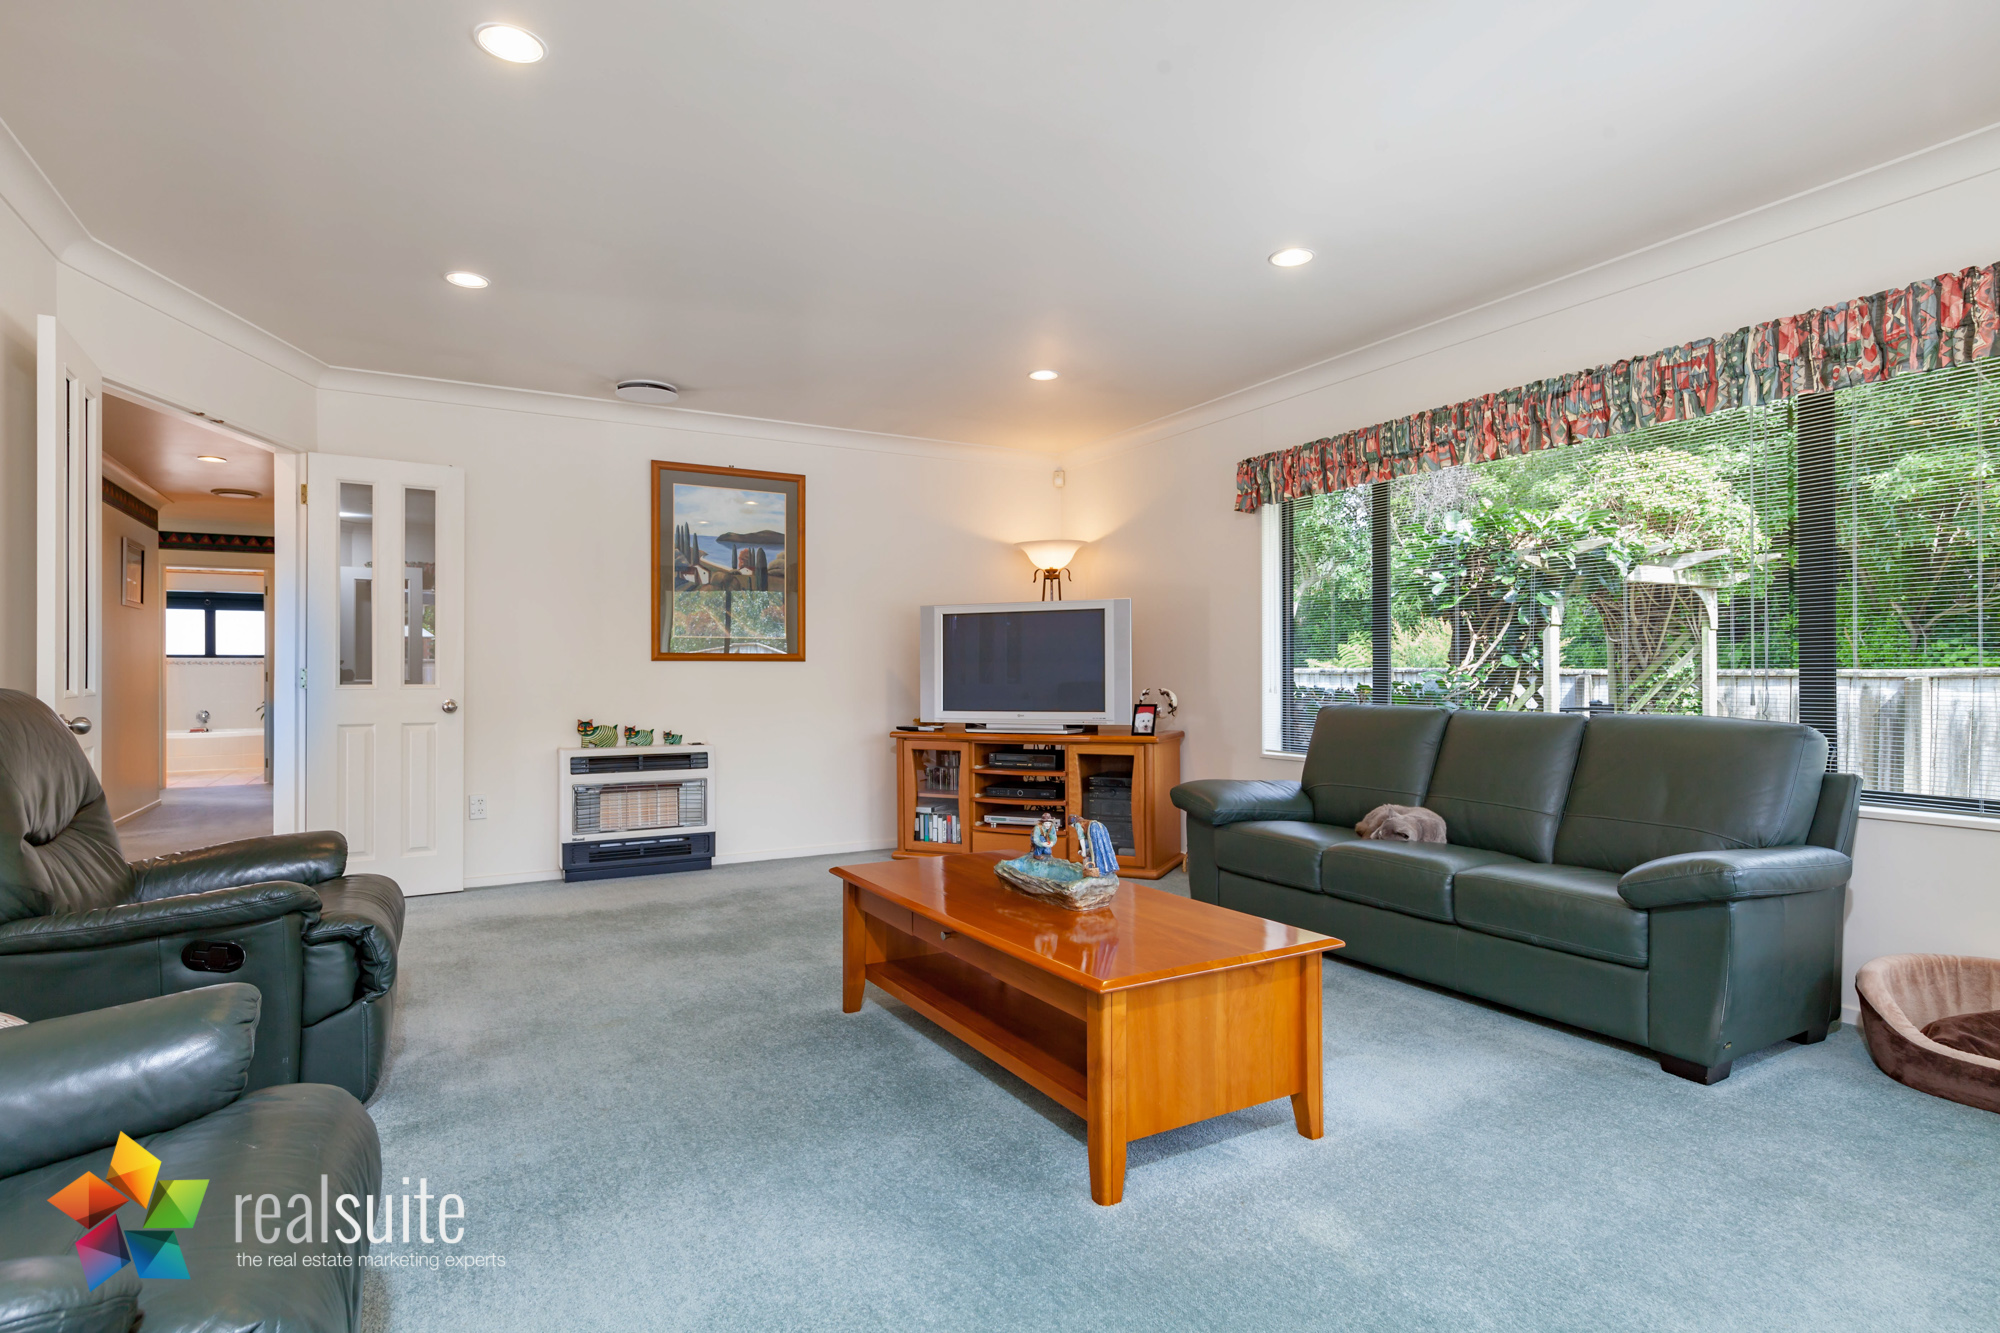 43 Maryhuse Grove, Manor Park 8359